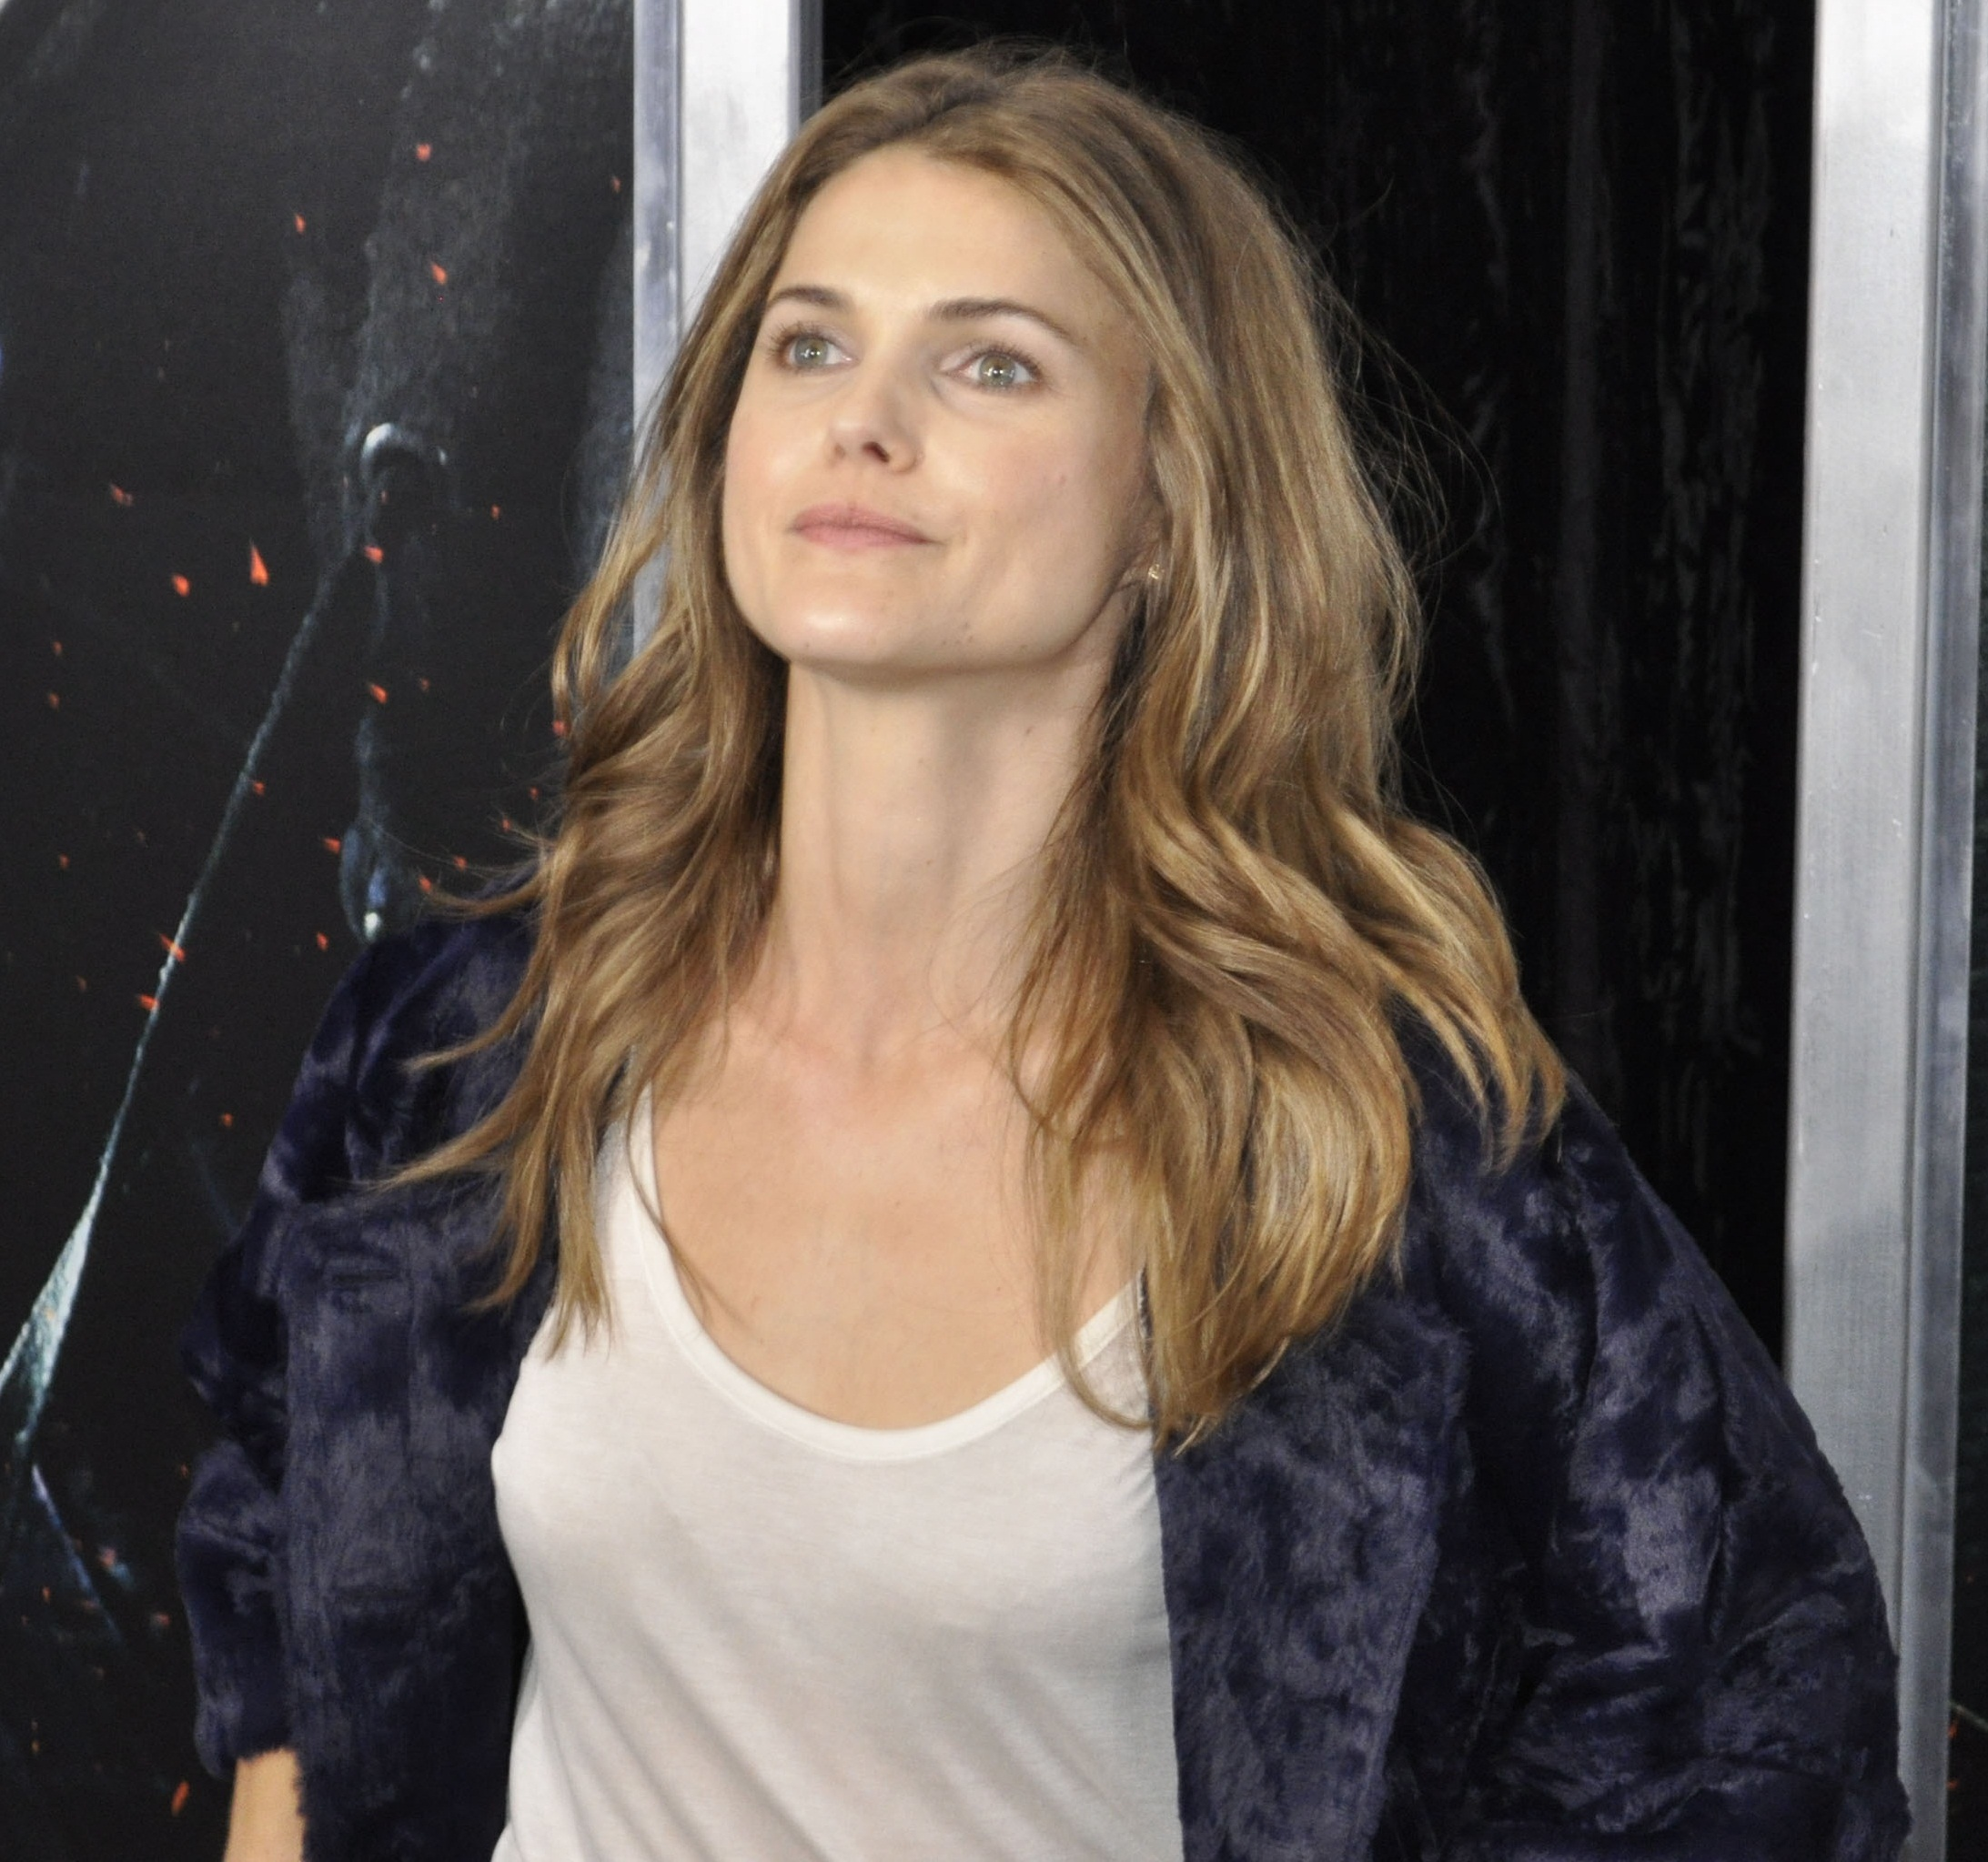 Photos Keri Russell nude photos 2019